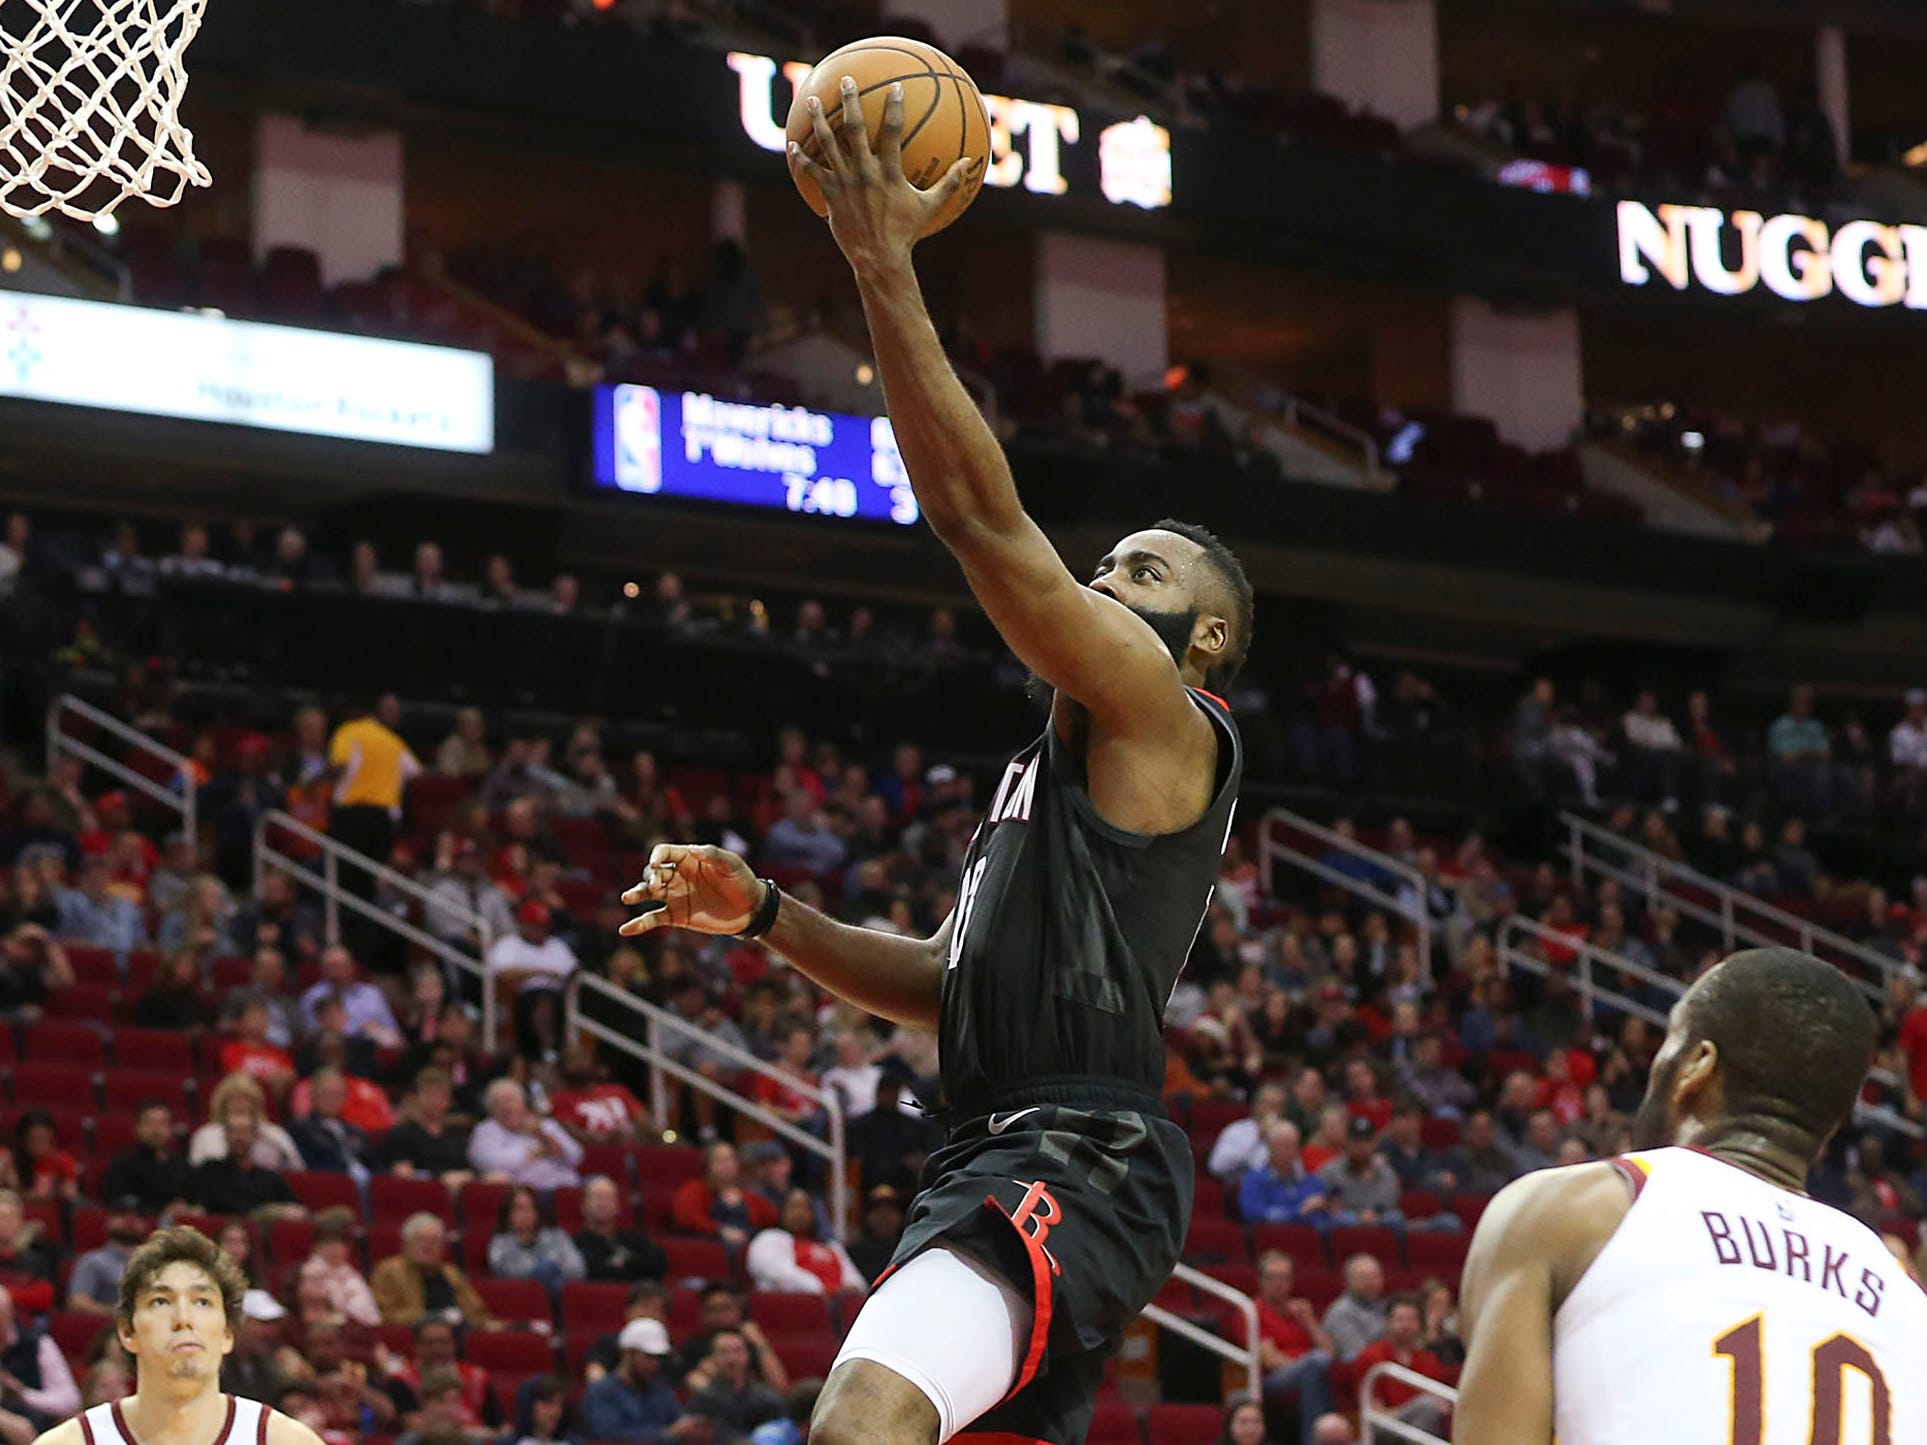 52. James Harden, Rockets (Jan. 11): 43 points, 12 assists, 10 rebounds in 141-113 win over Cavaliers (sixth of season).